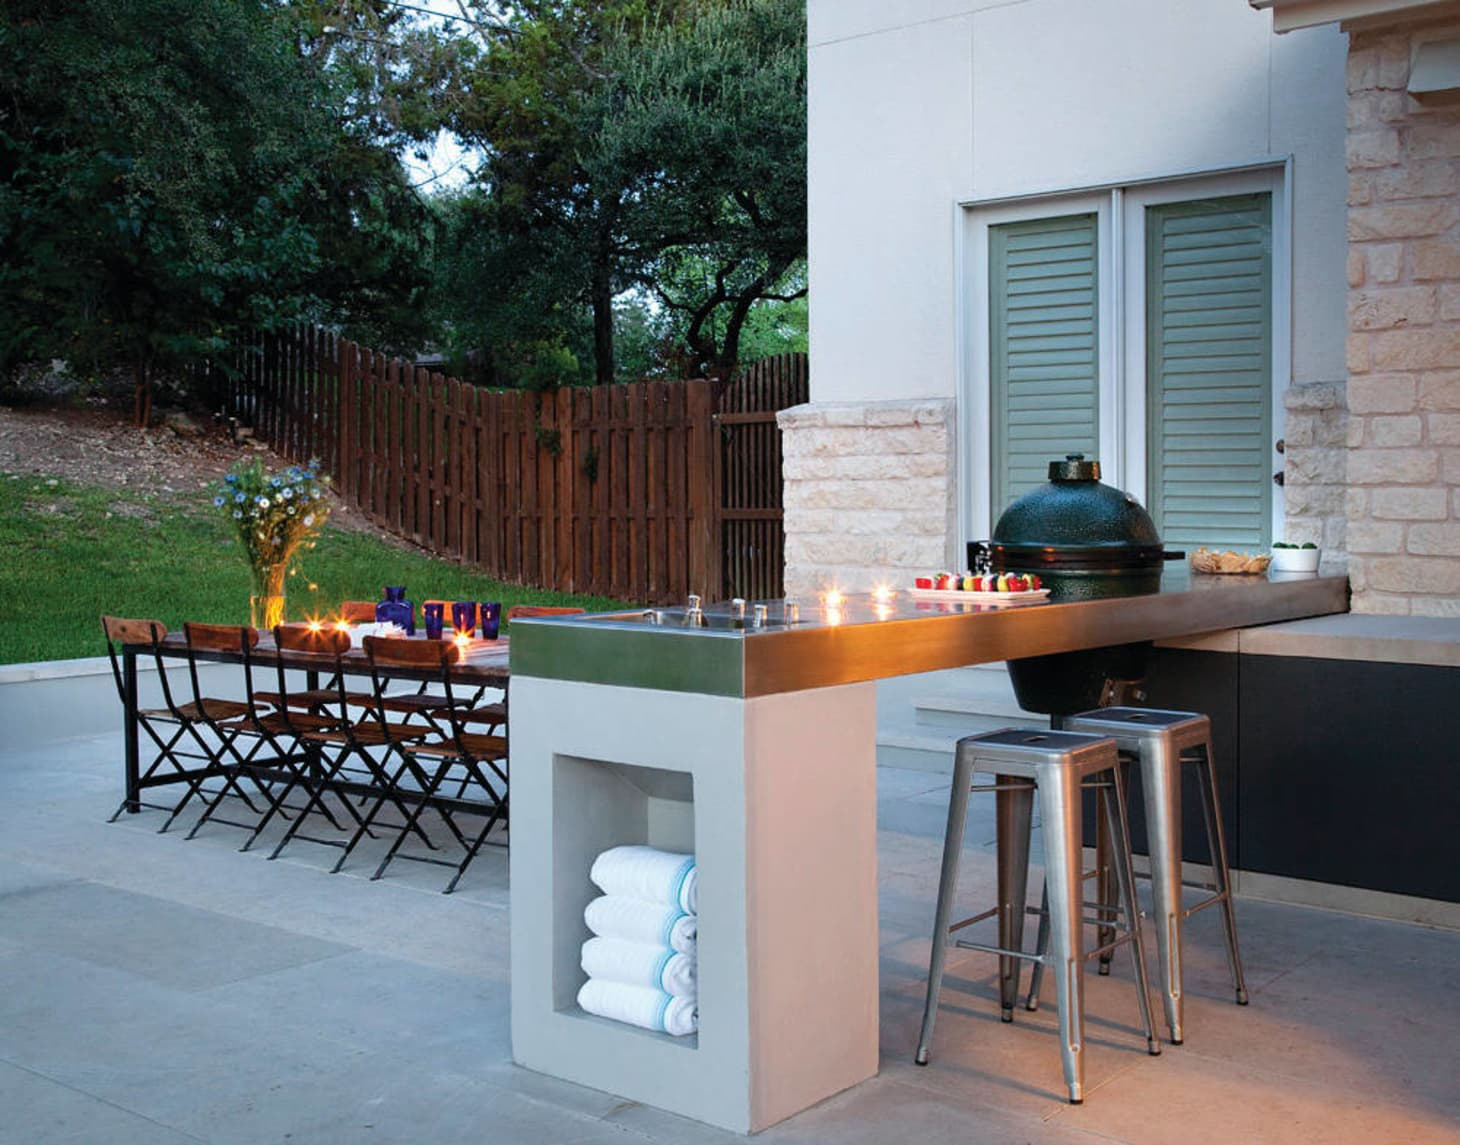 Outdoor Kitchen Ideas & Inspiration   Apartment Therapy